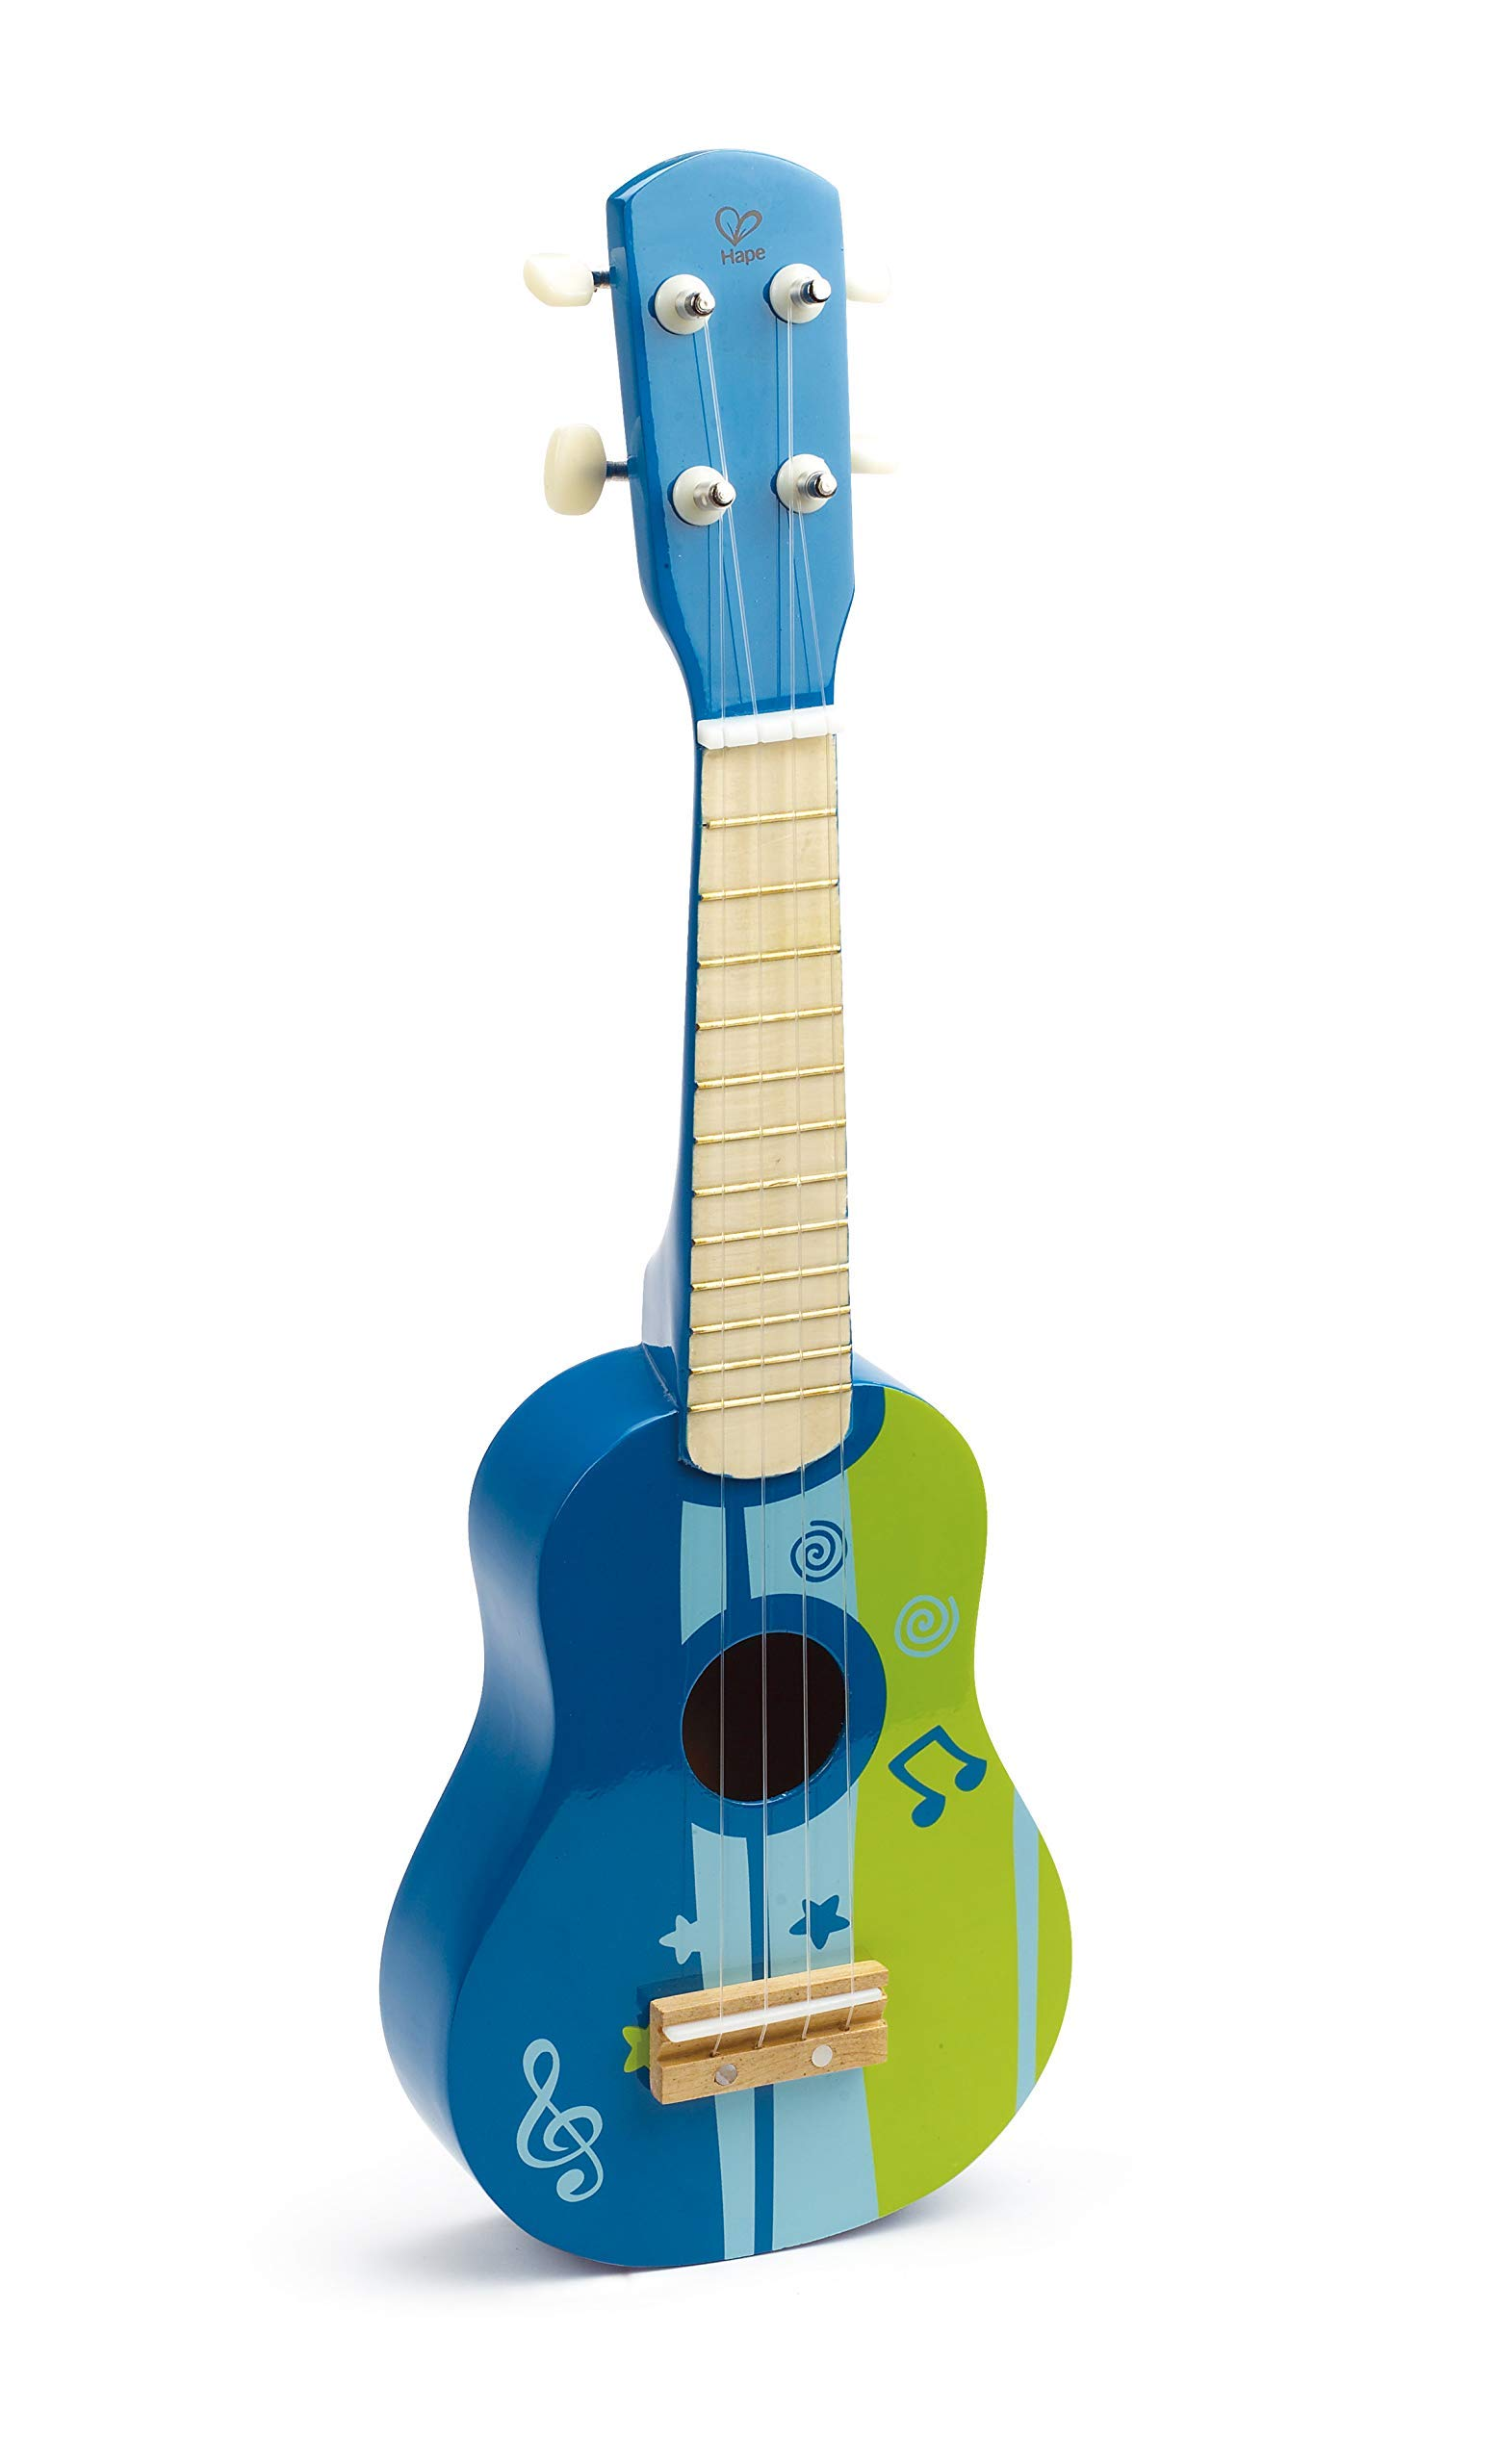 Hape Kid's Wooden Toy Ukulele in Blue (Renewed)